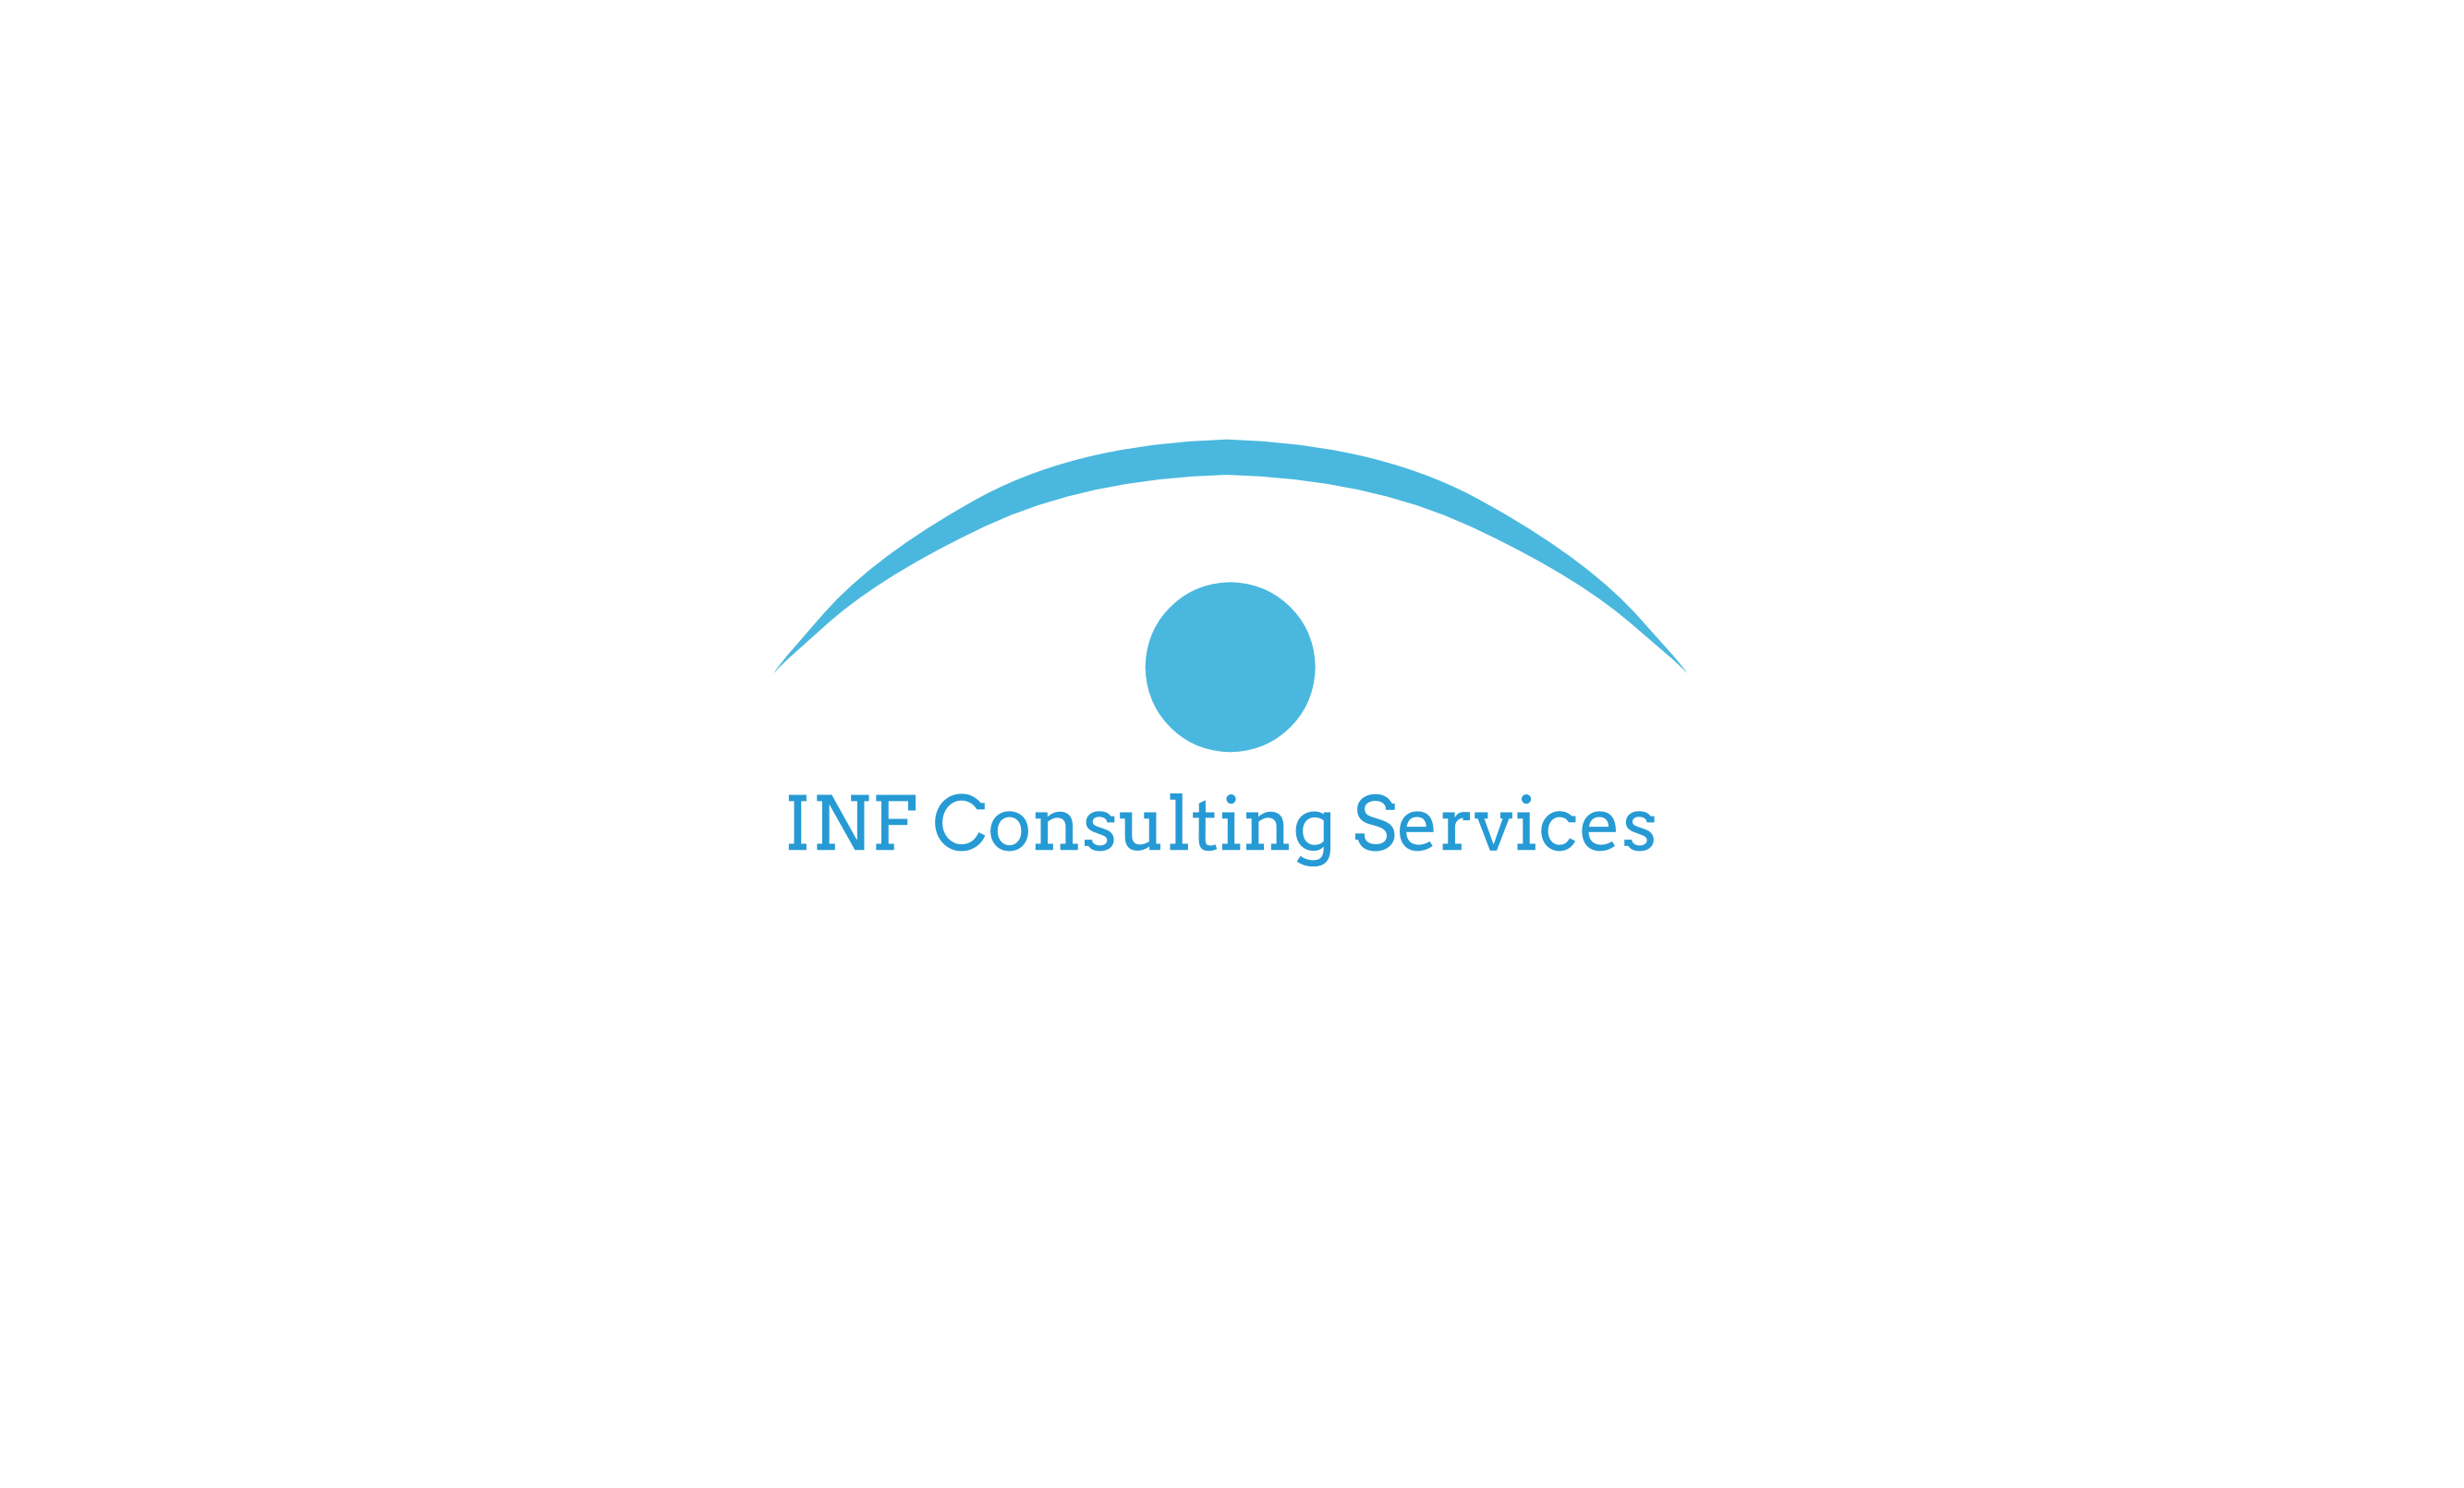 INF Consulting Services